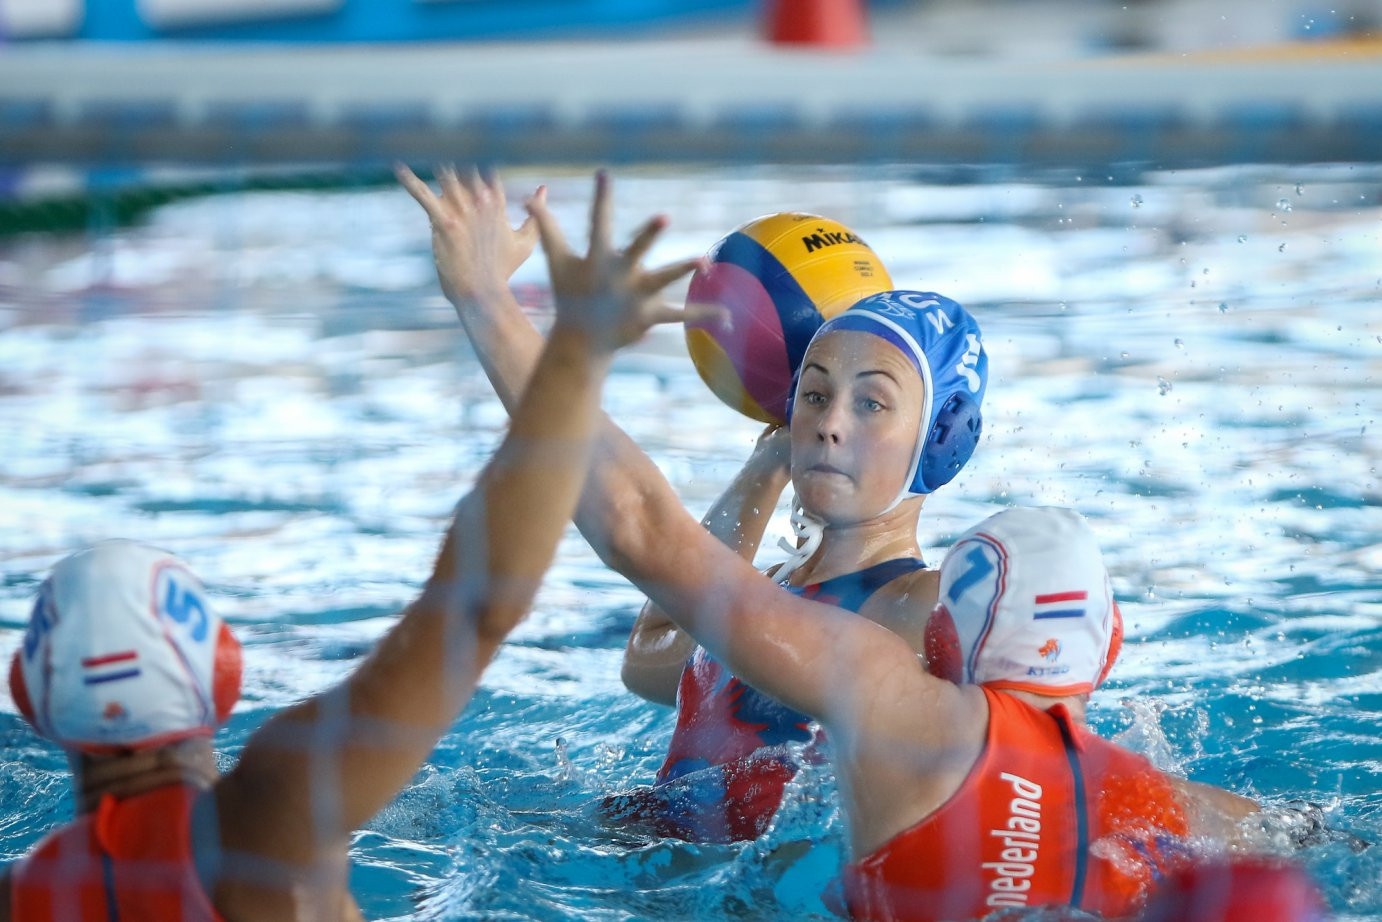 Russia thrash Kazakhstan to reach quarter-finals at World Women's Youth Water Polo Championships